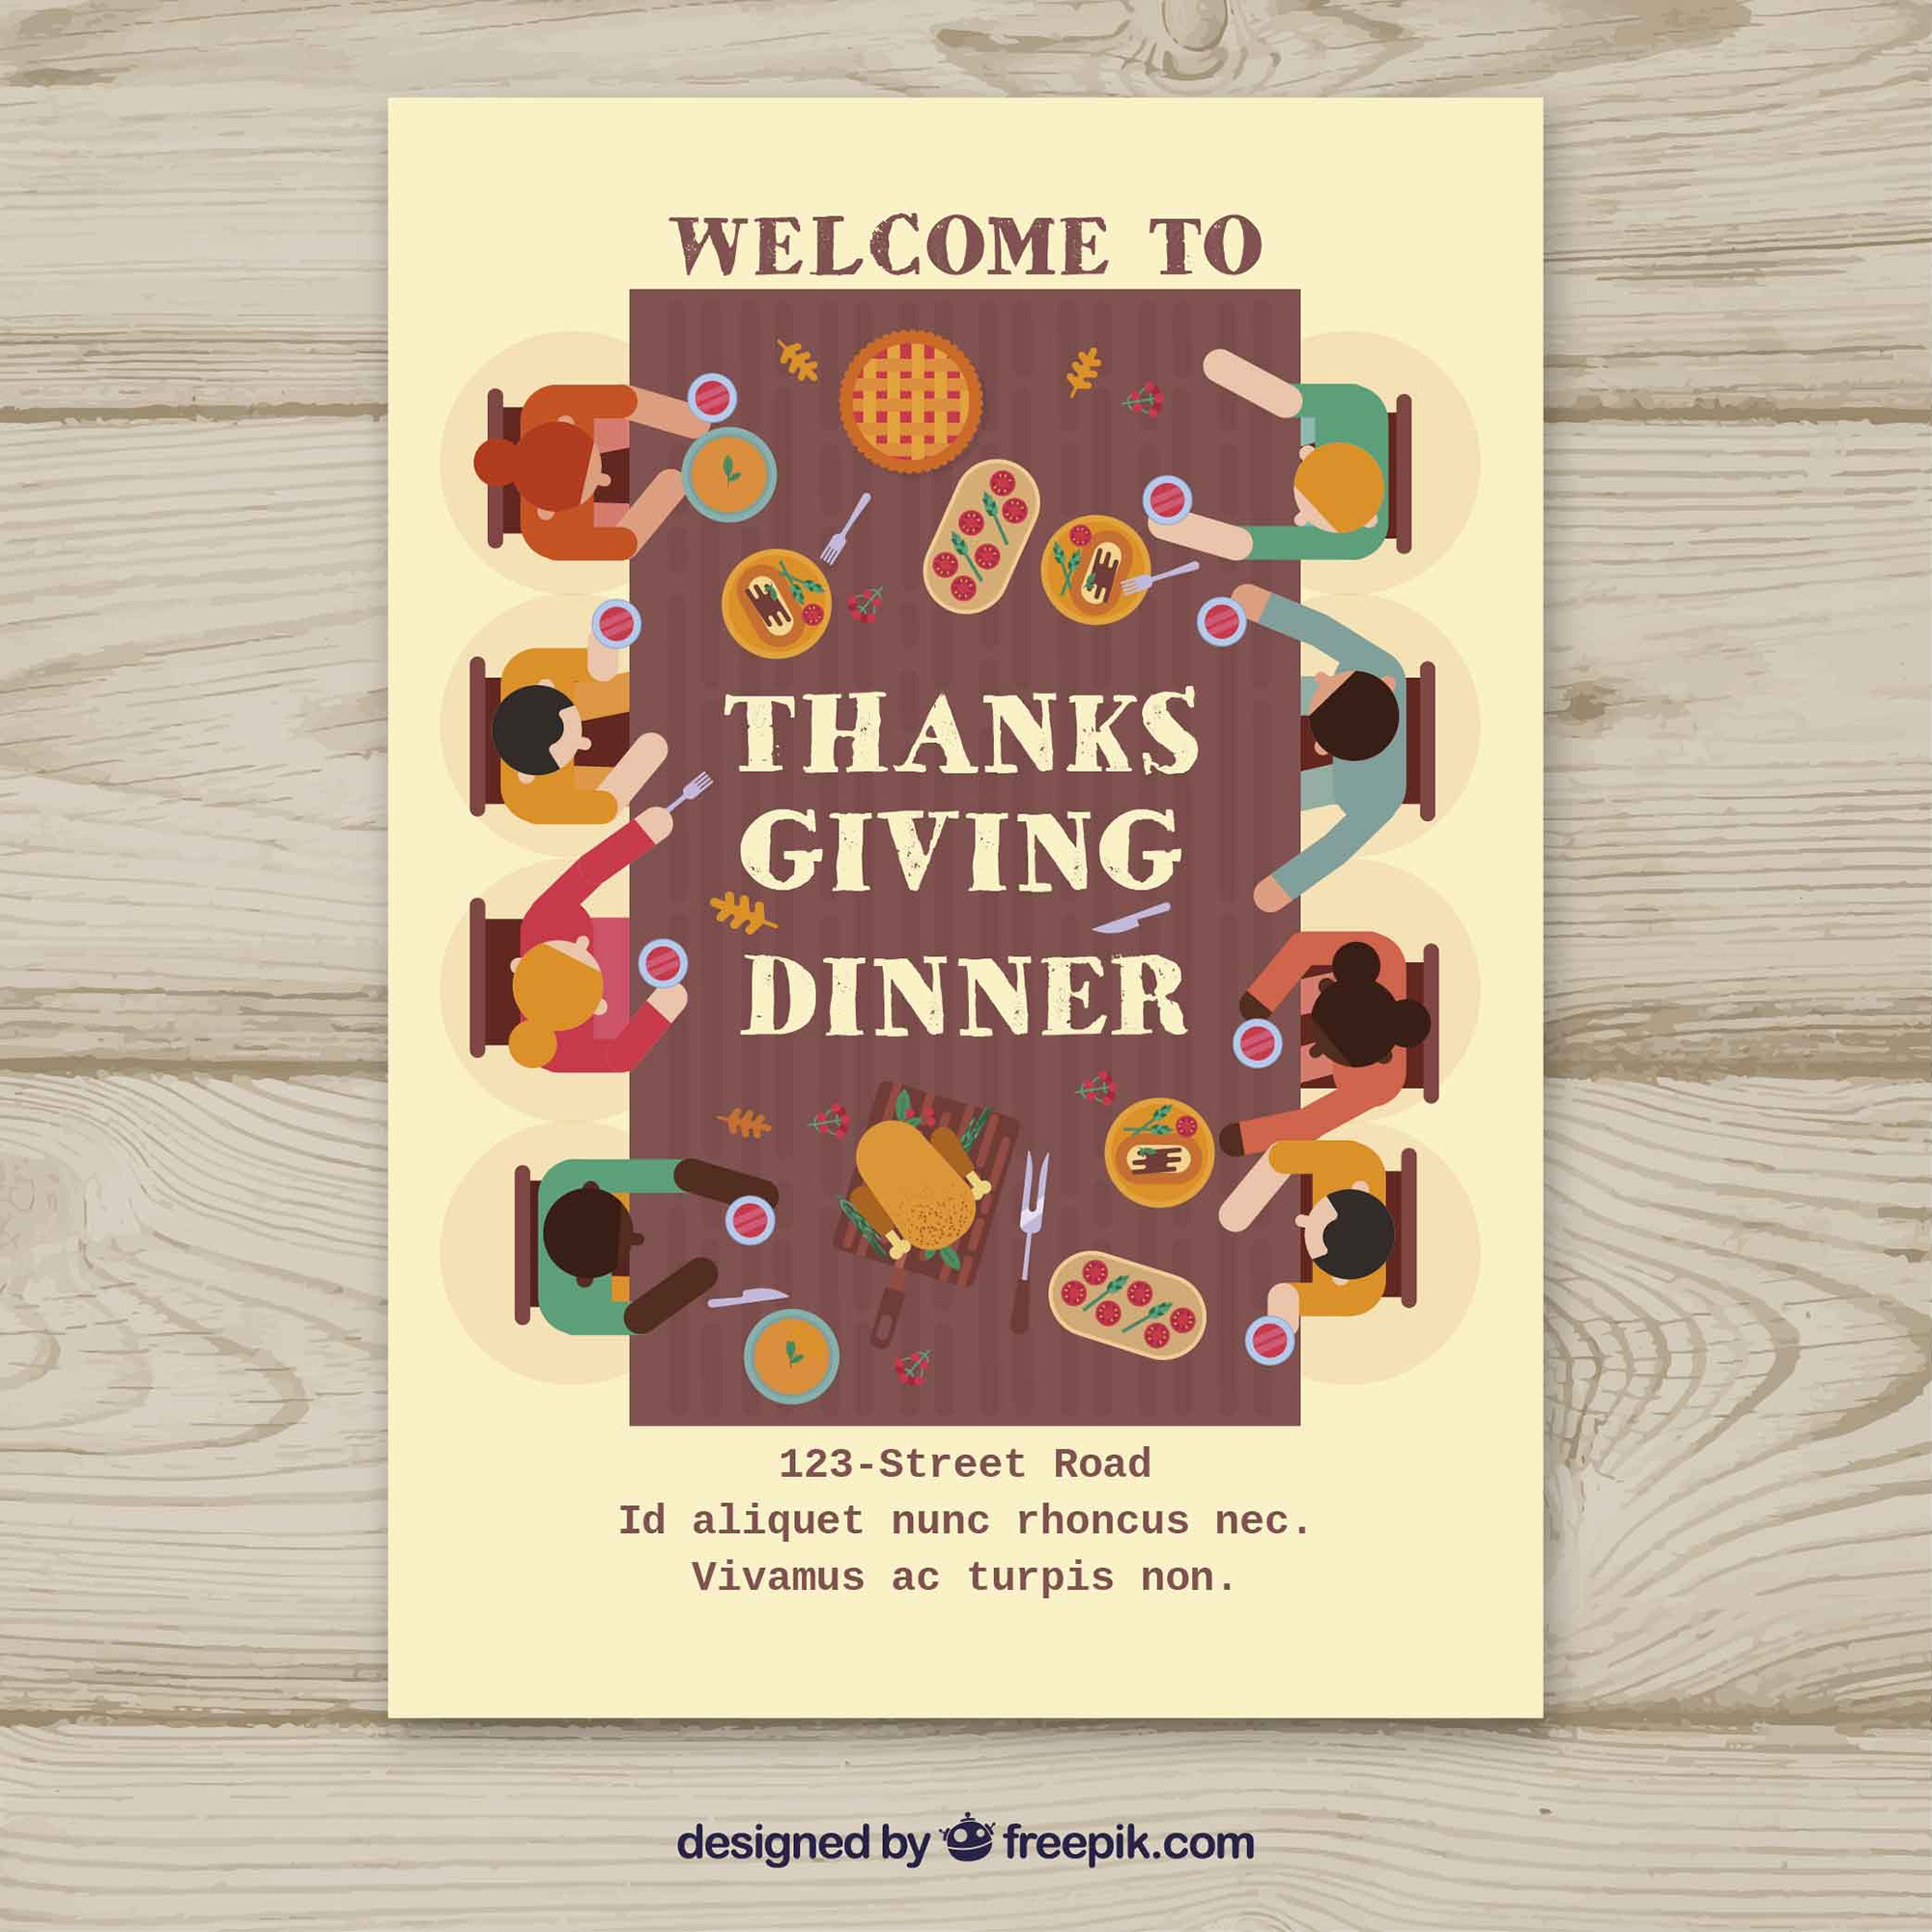 Thanksgiving poster with people at table